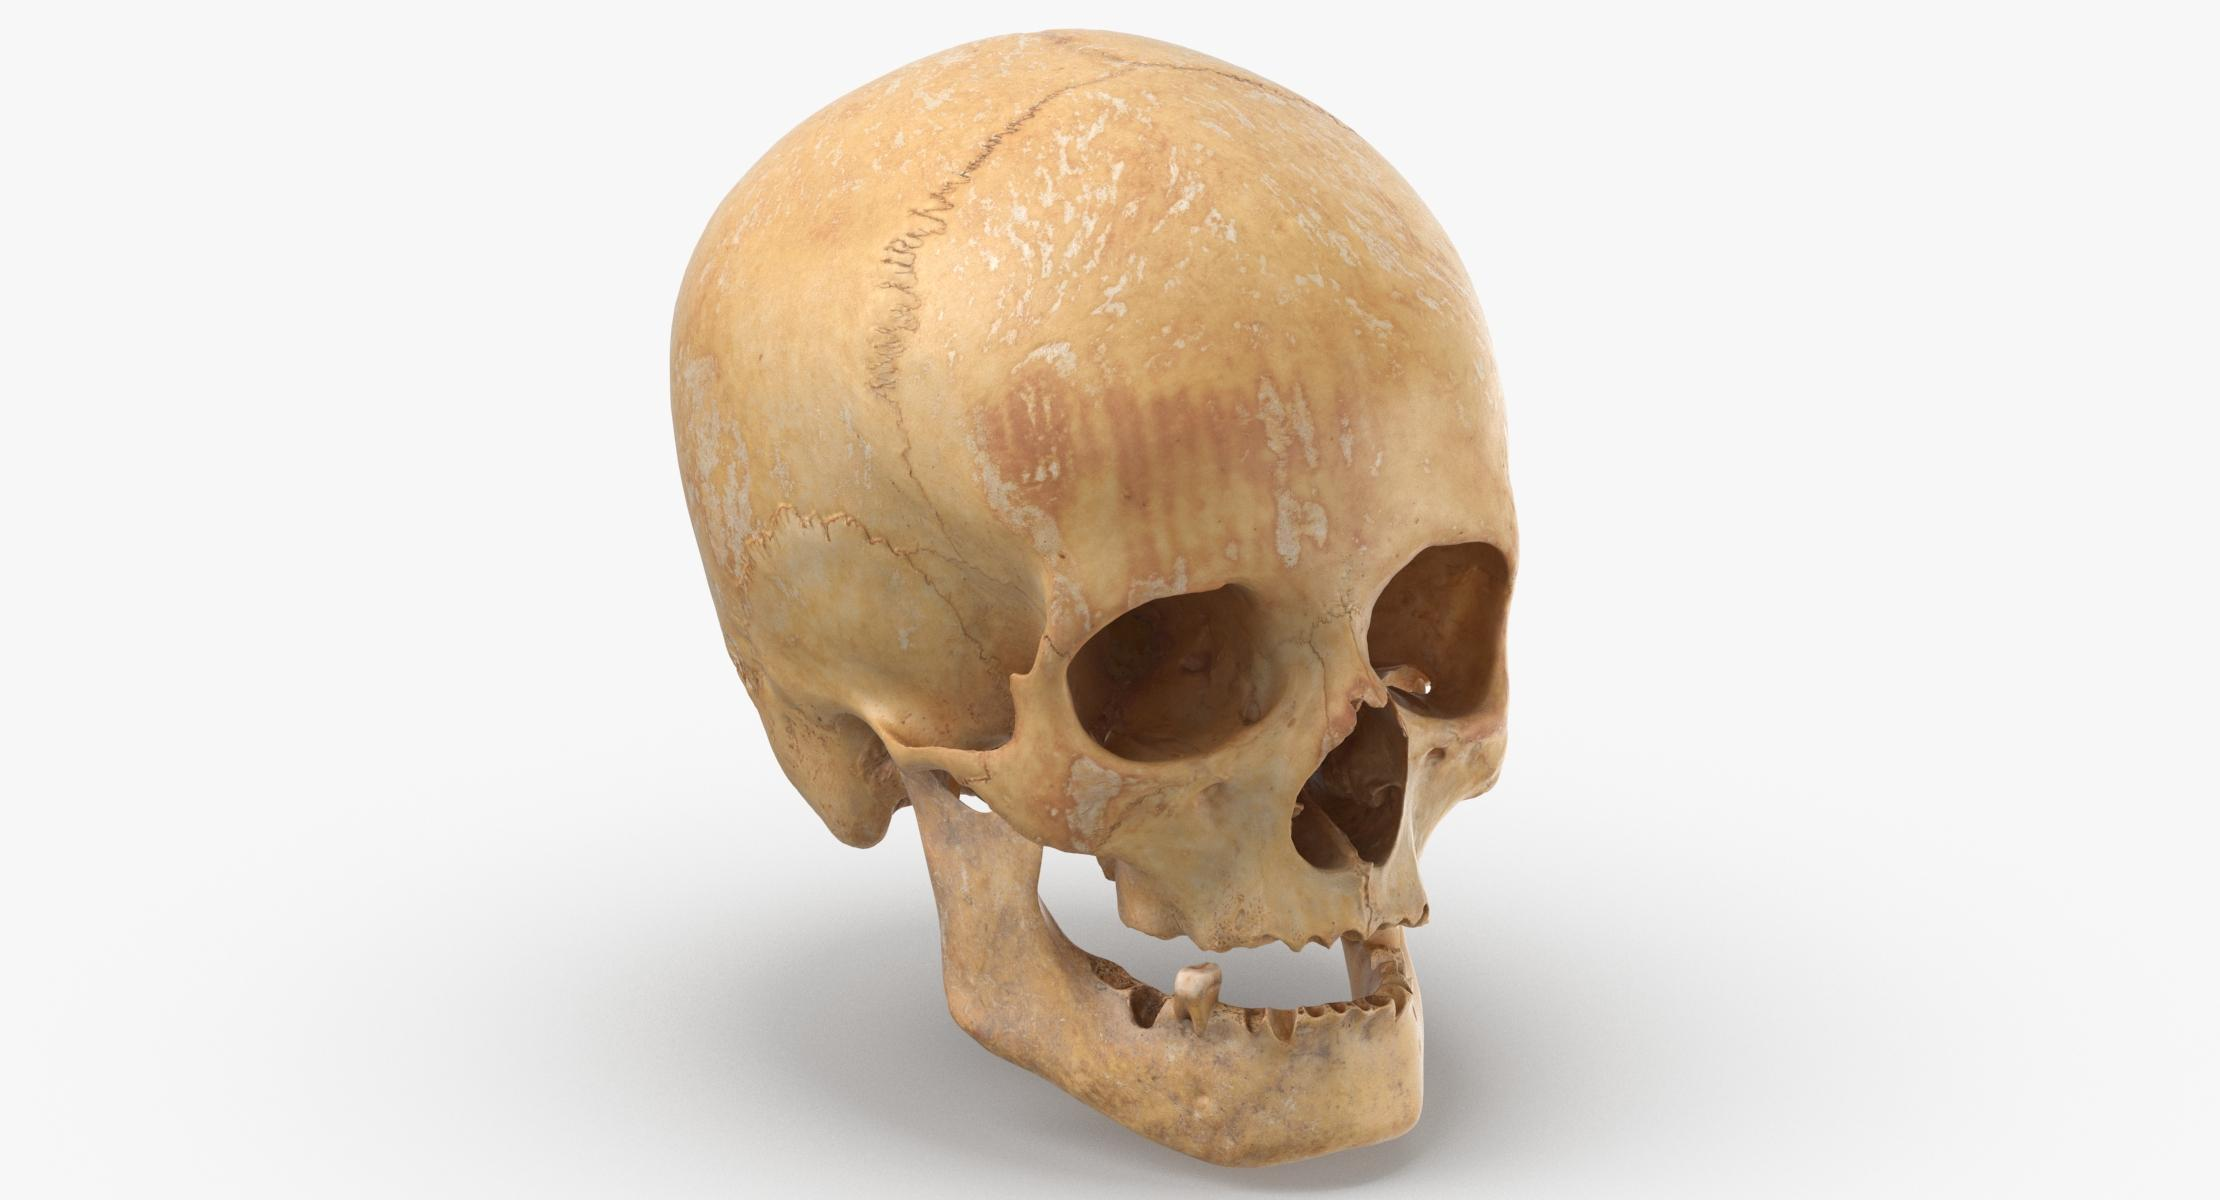 3D Human Female Skull With Jaw Damaged 01 - reel 1